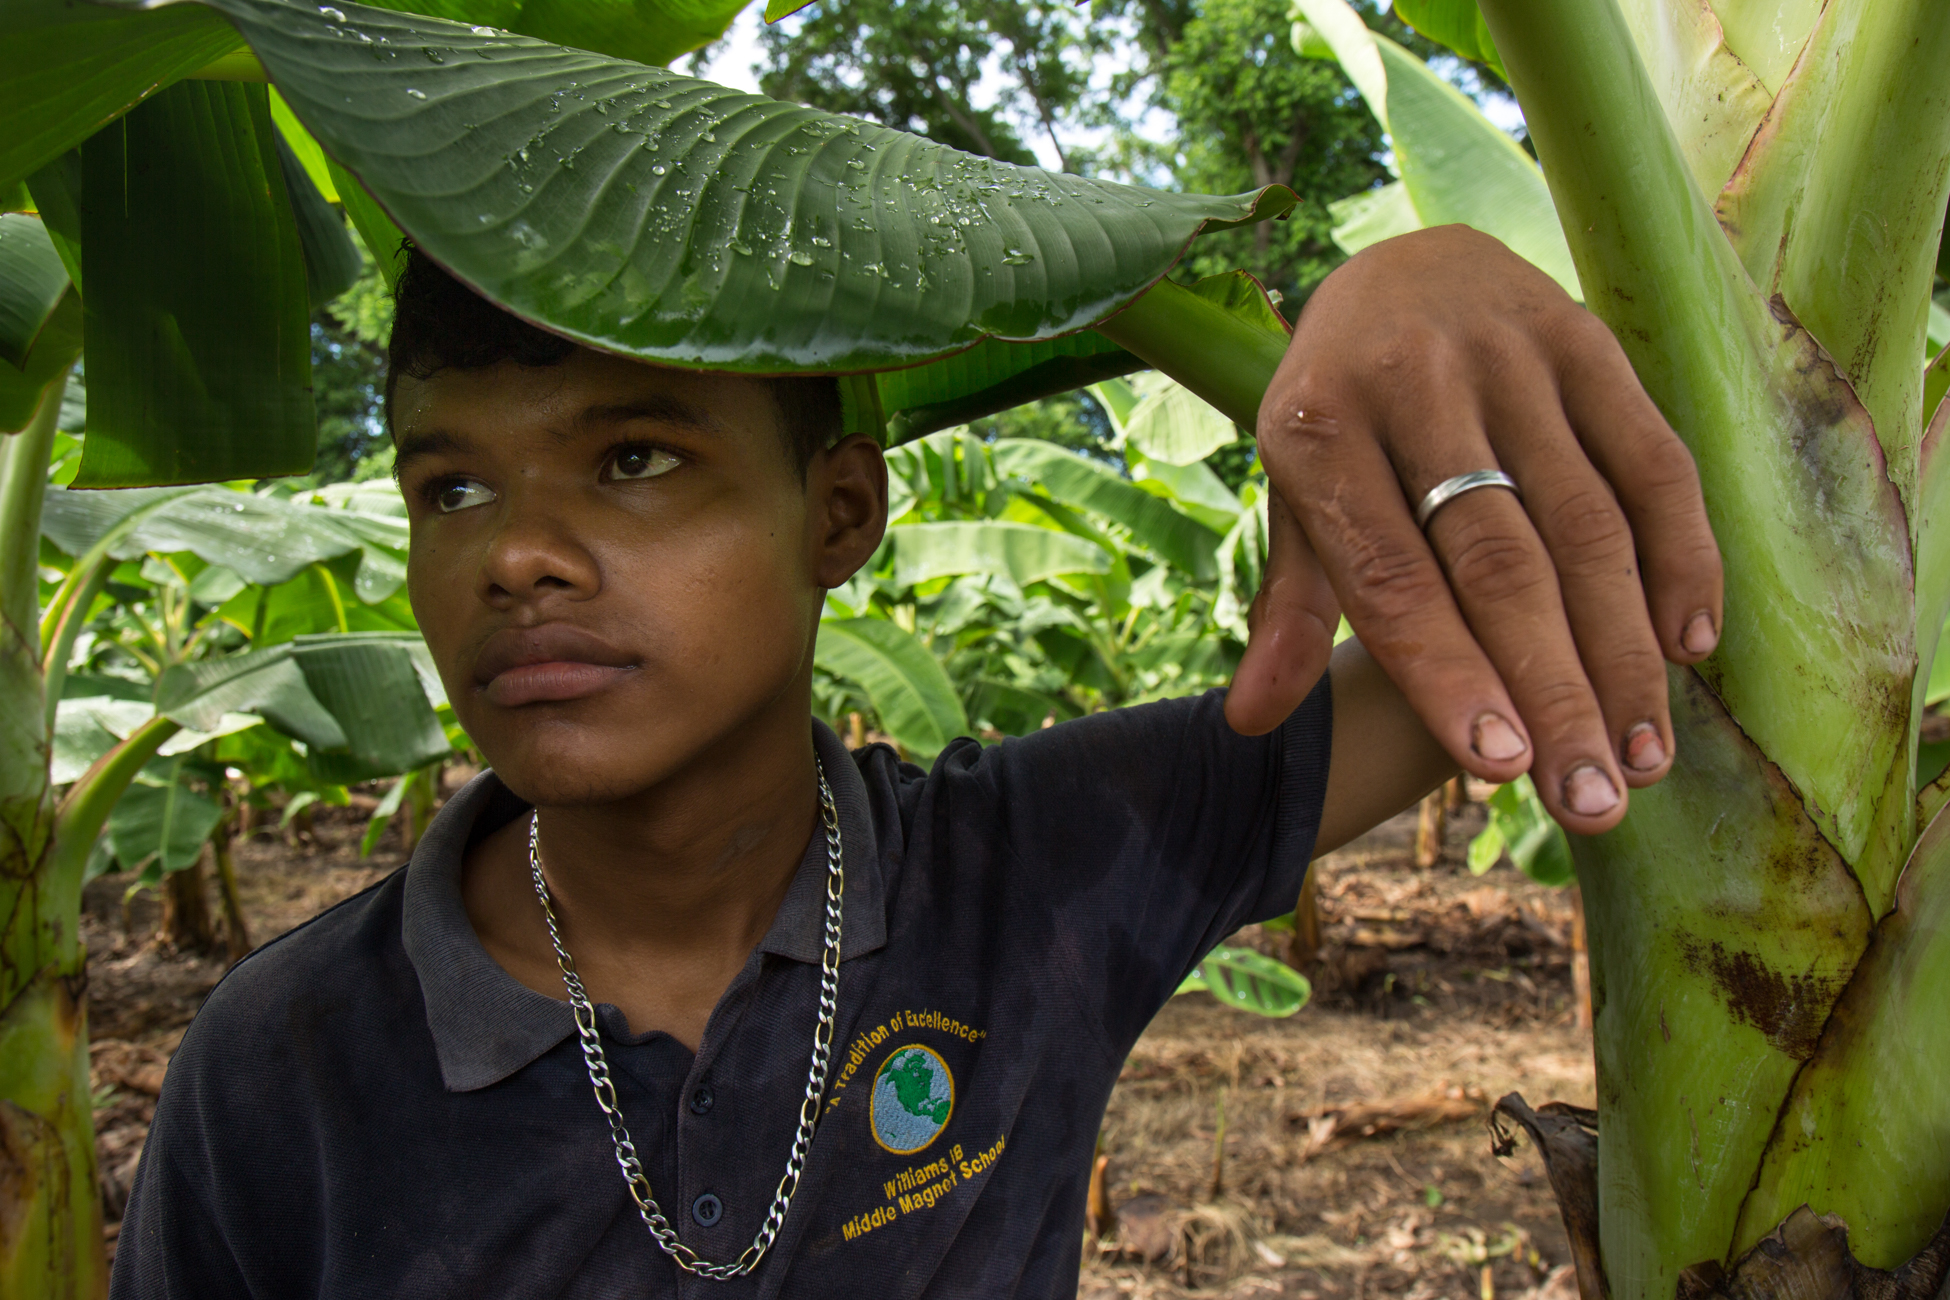 Eliezer Jose Ugoster, 16, at his father's plantain plantation, in Santa Teresa, Ometepe. Their land is under threat to be confiscated by the governemnt if the Grand Canal project goes through.